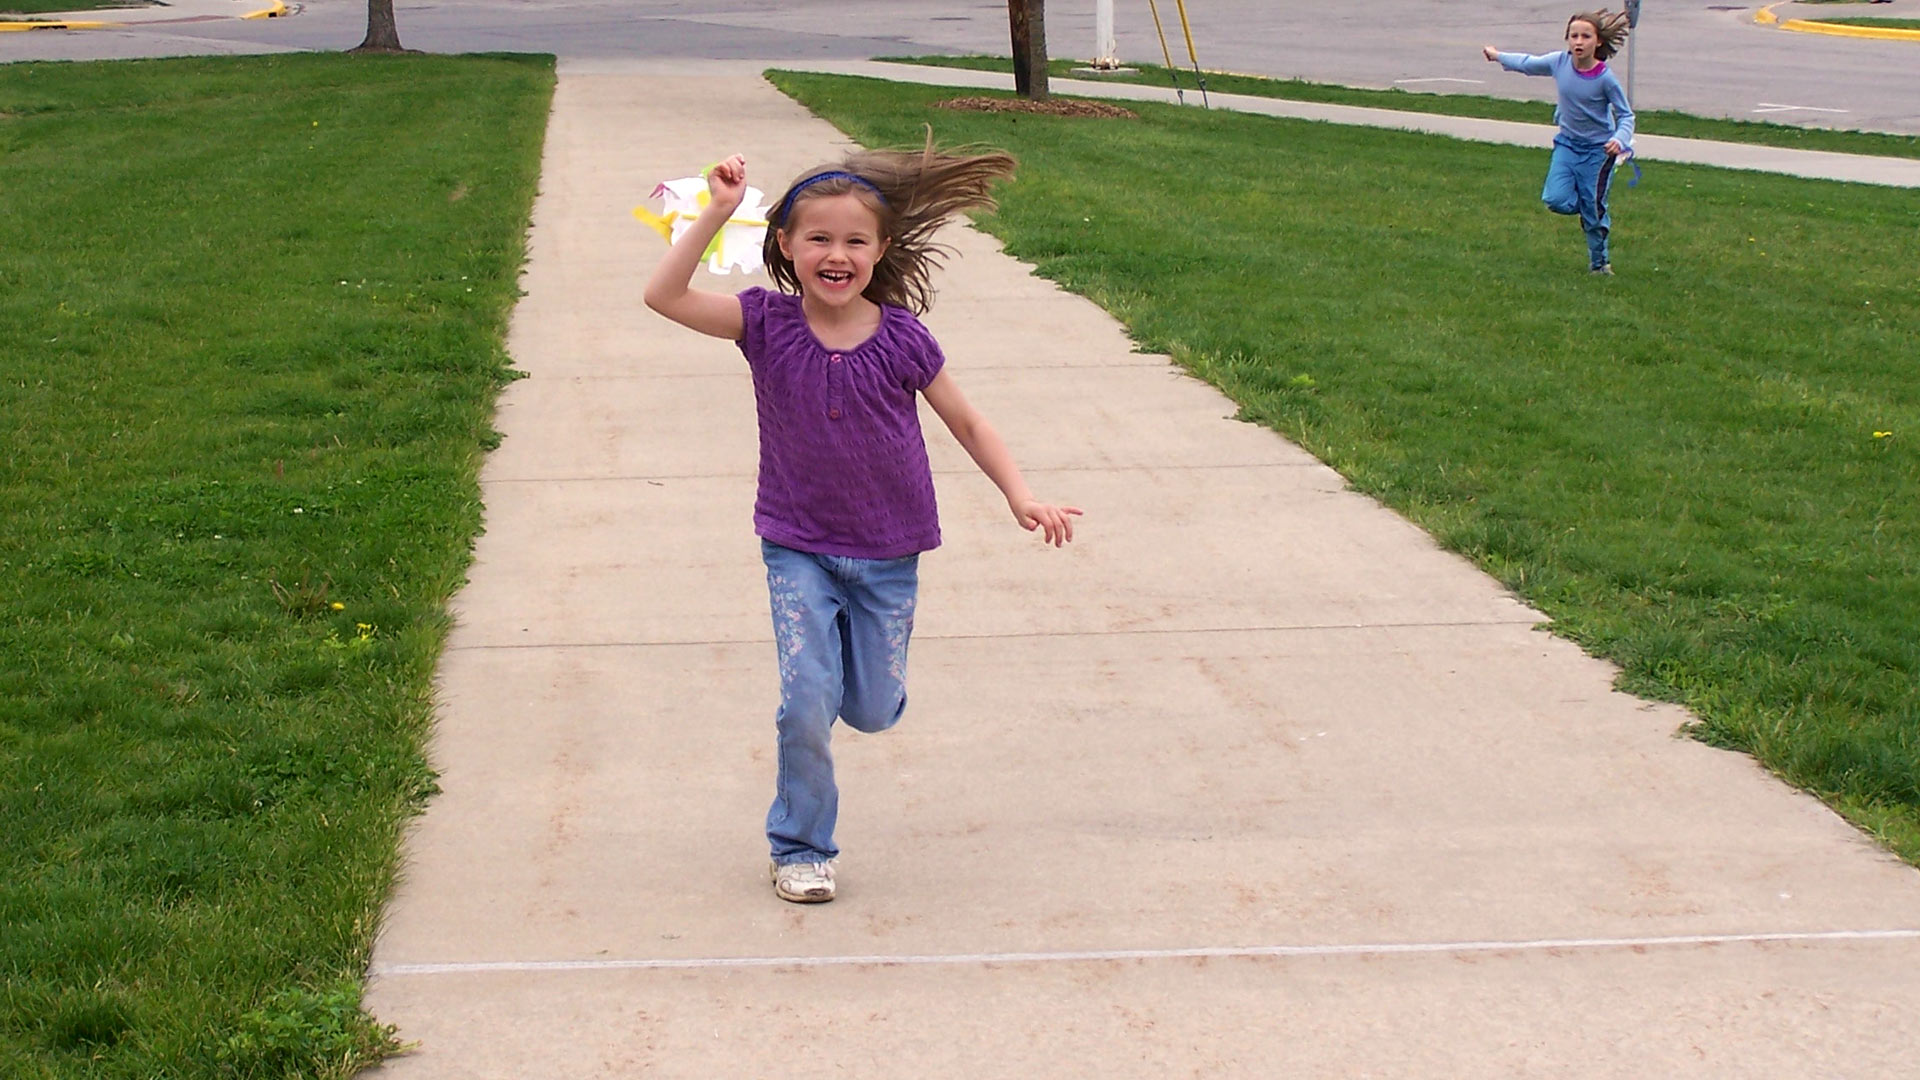 Enthusiastic child running outdoors towards you with a kite catching wind